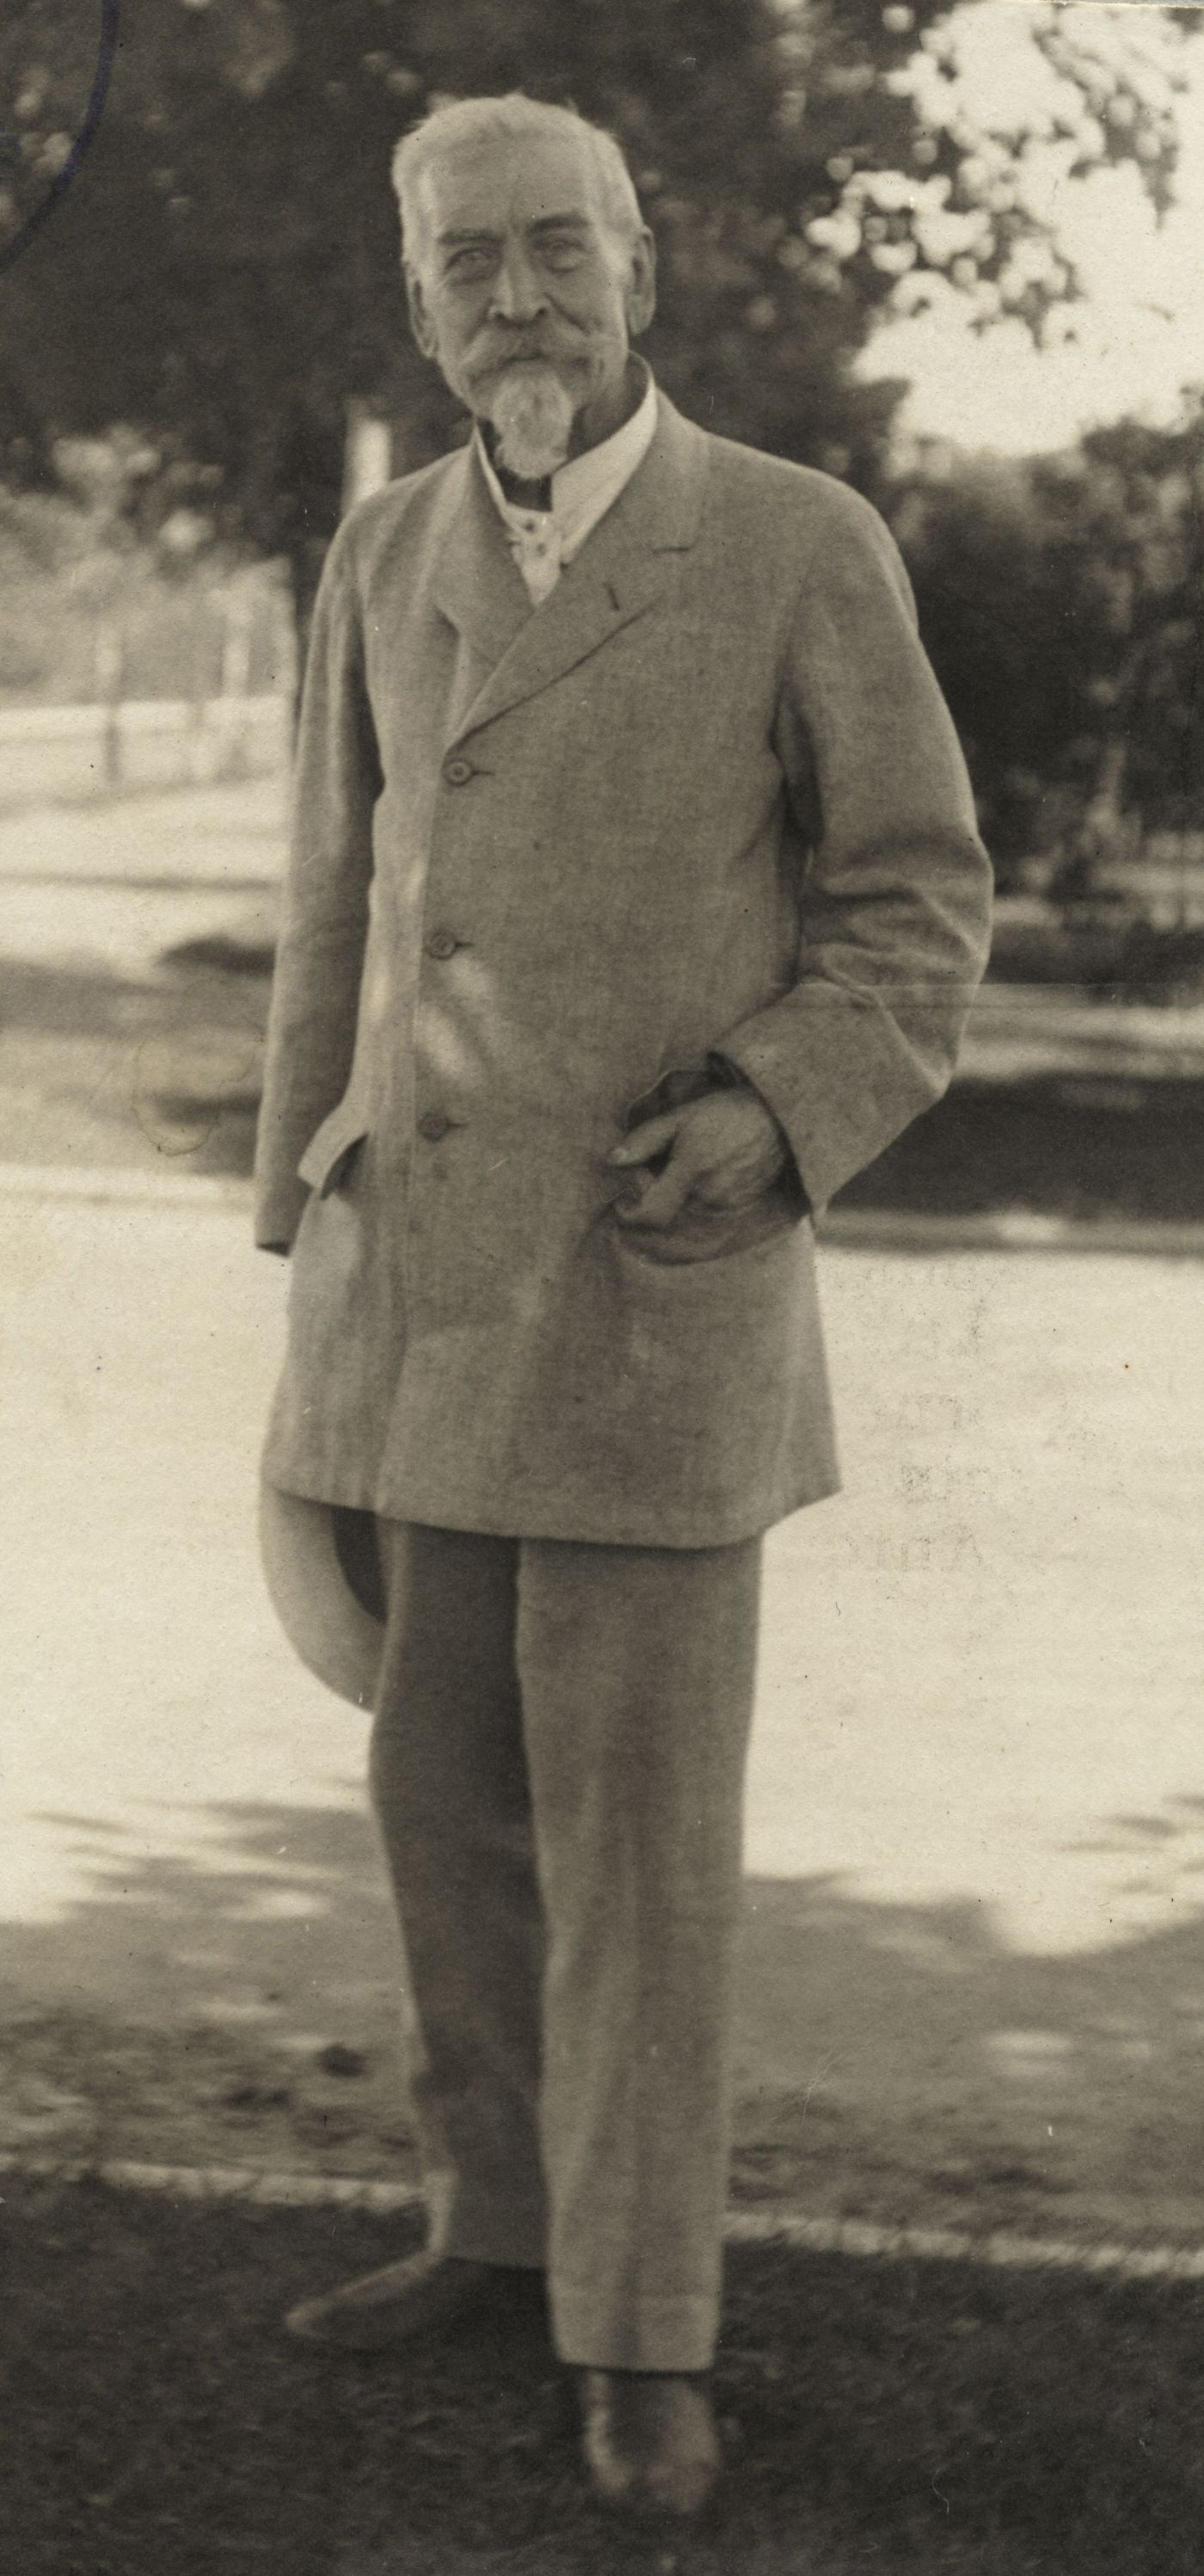 Sepia photograph of an elderly man with white hair, mustache and beard, dressed in a pale suit. He stands at the edge of a tree-lined street, one hand in a pocket, the other holding a hat.